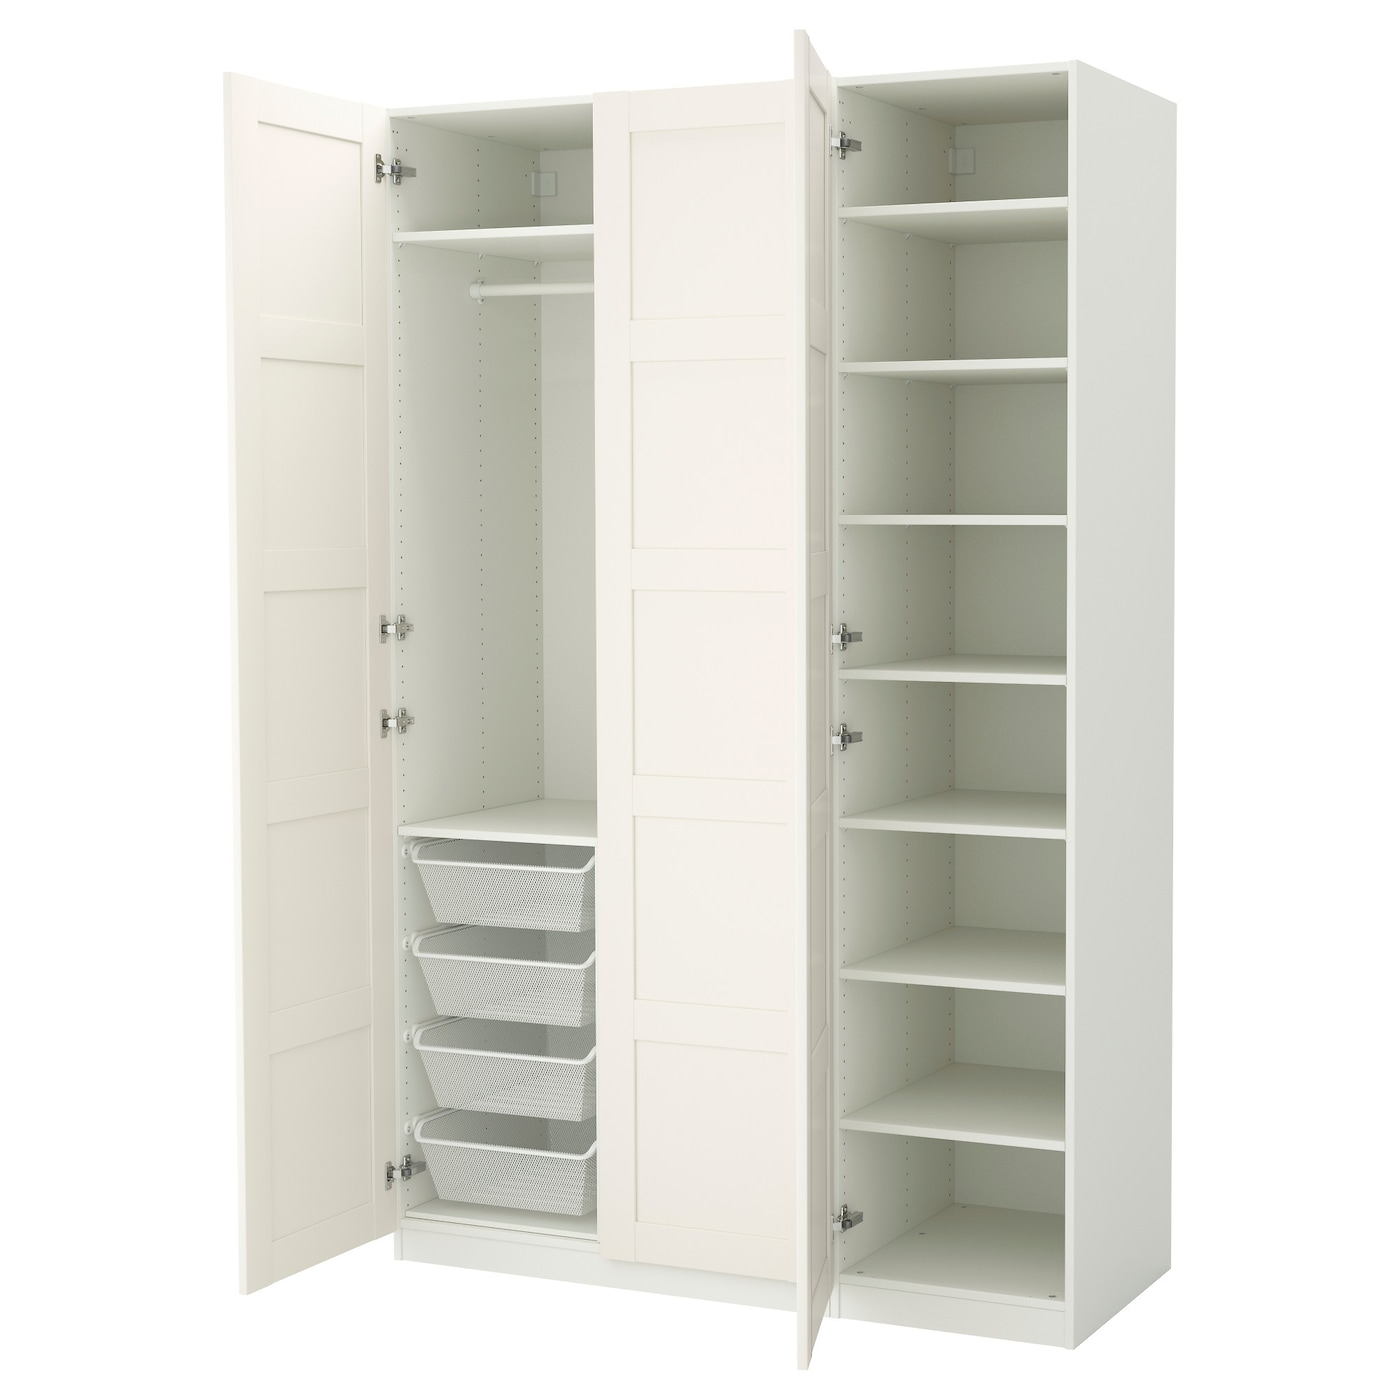 pax wardrobe white bergsbo white 150x60x236 cm ikea. Black Bedroom Furniture Sets. Home Design Ideas